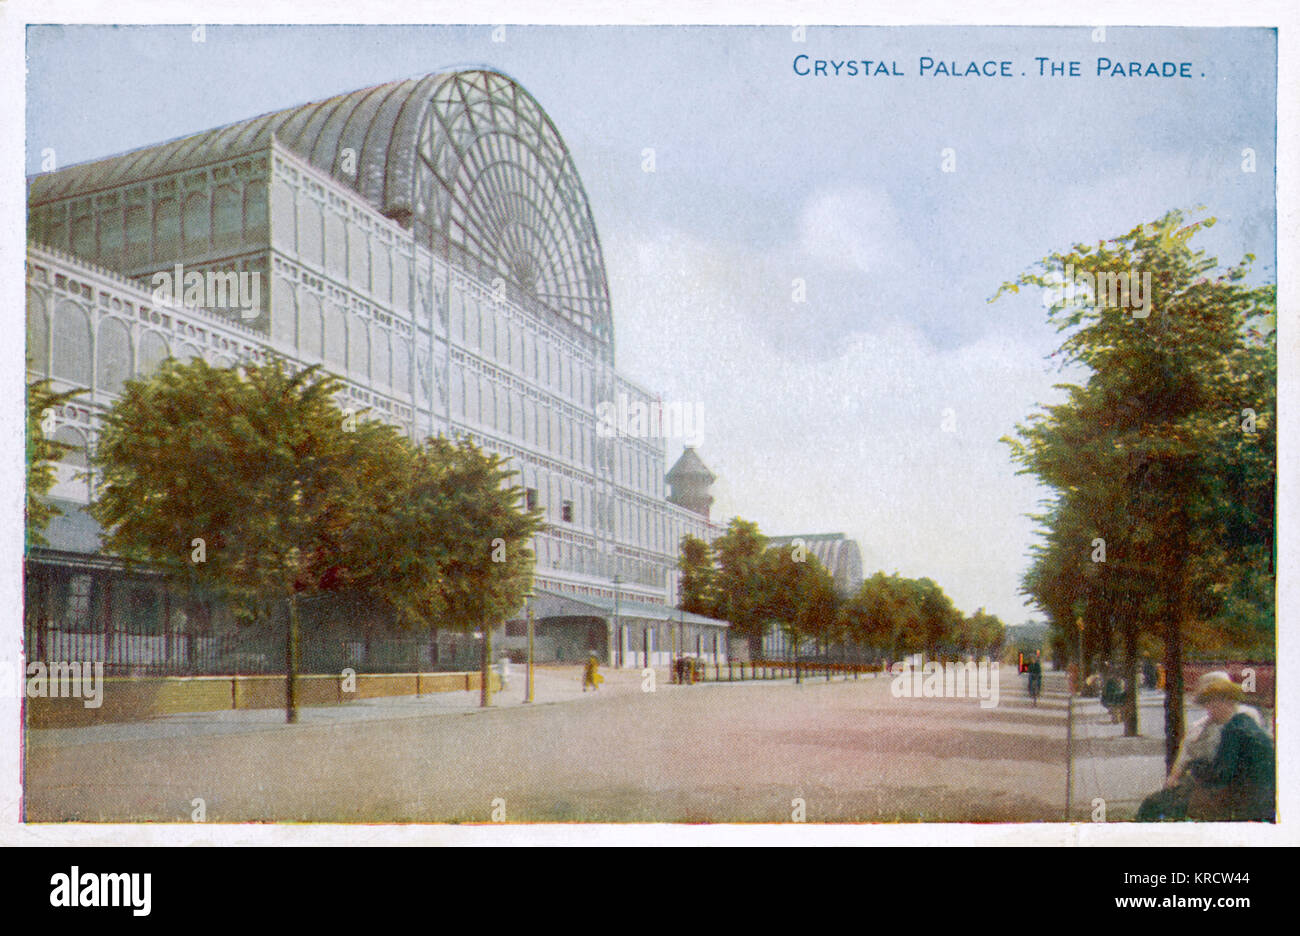 The Crystal Palace from The Parade which is looking unusually peaceful. Date: Circa 1900 - Stock Image